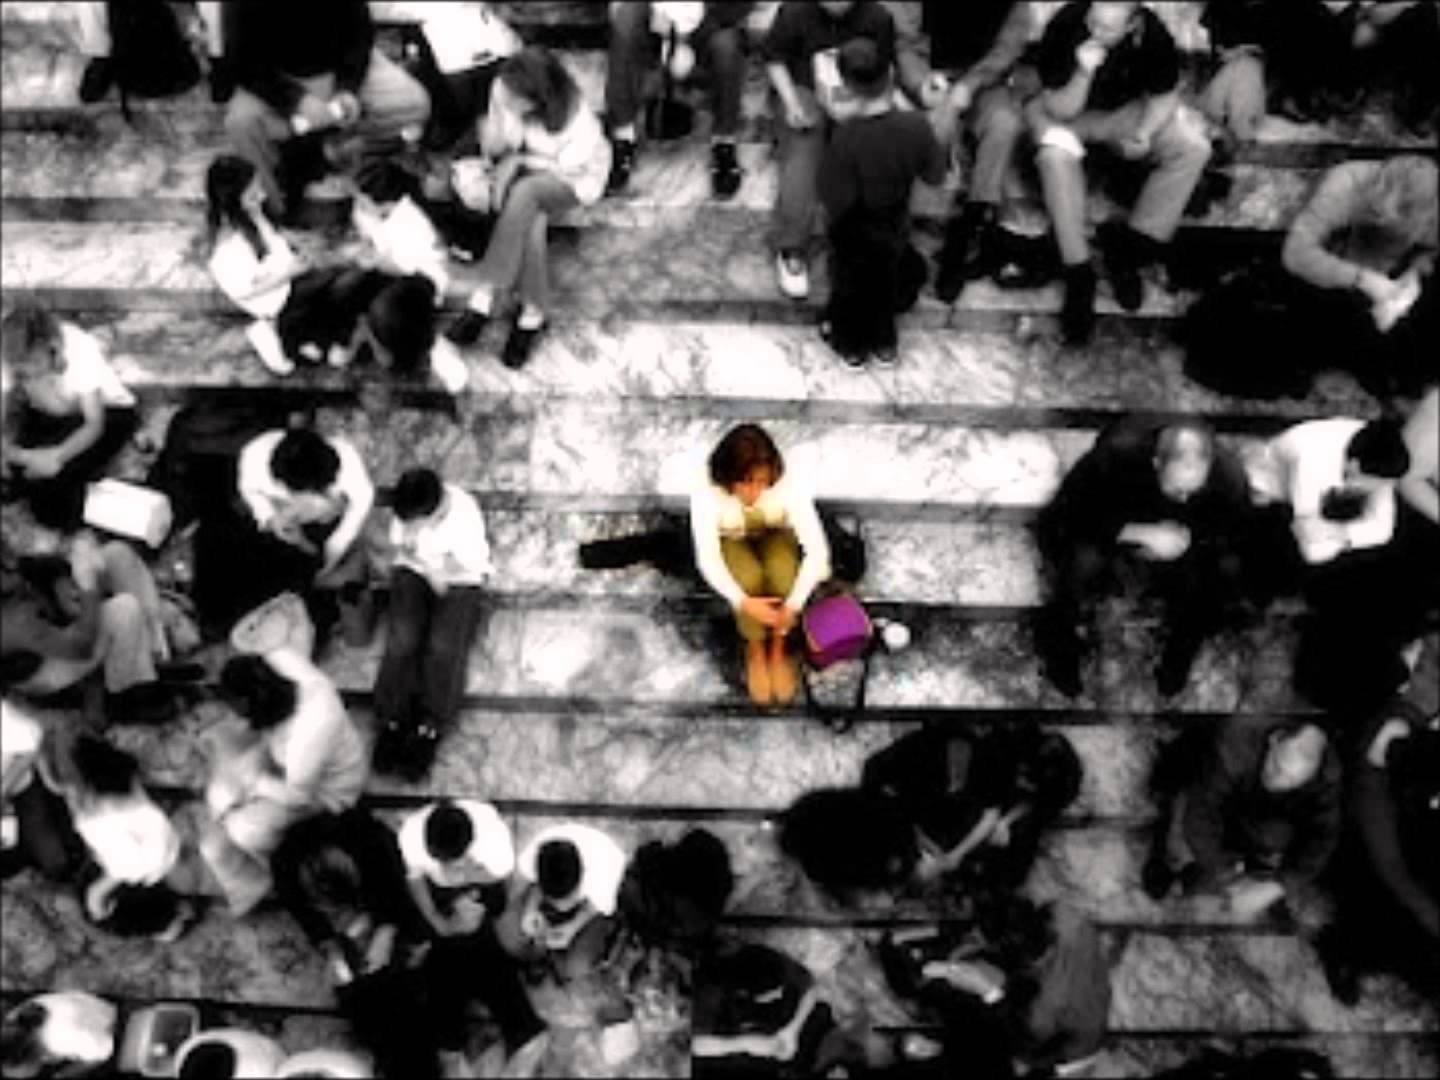 Woman lost in a crowd